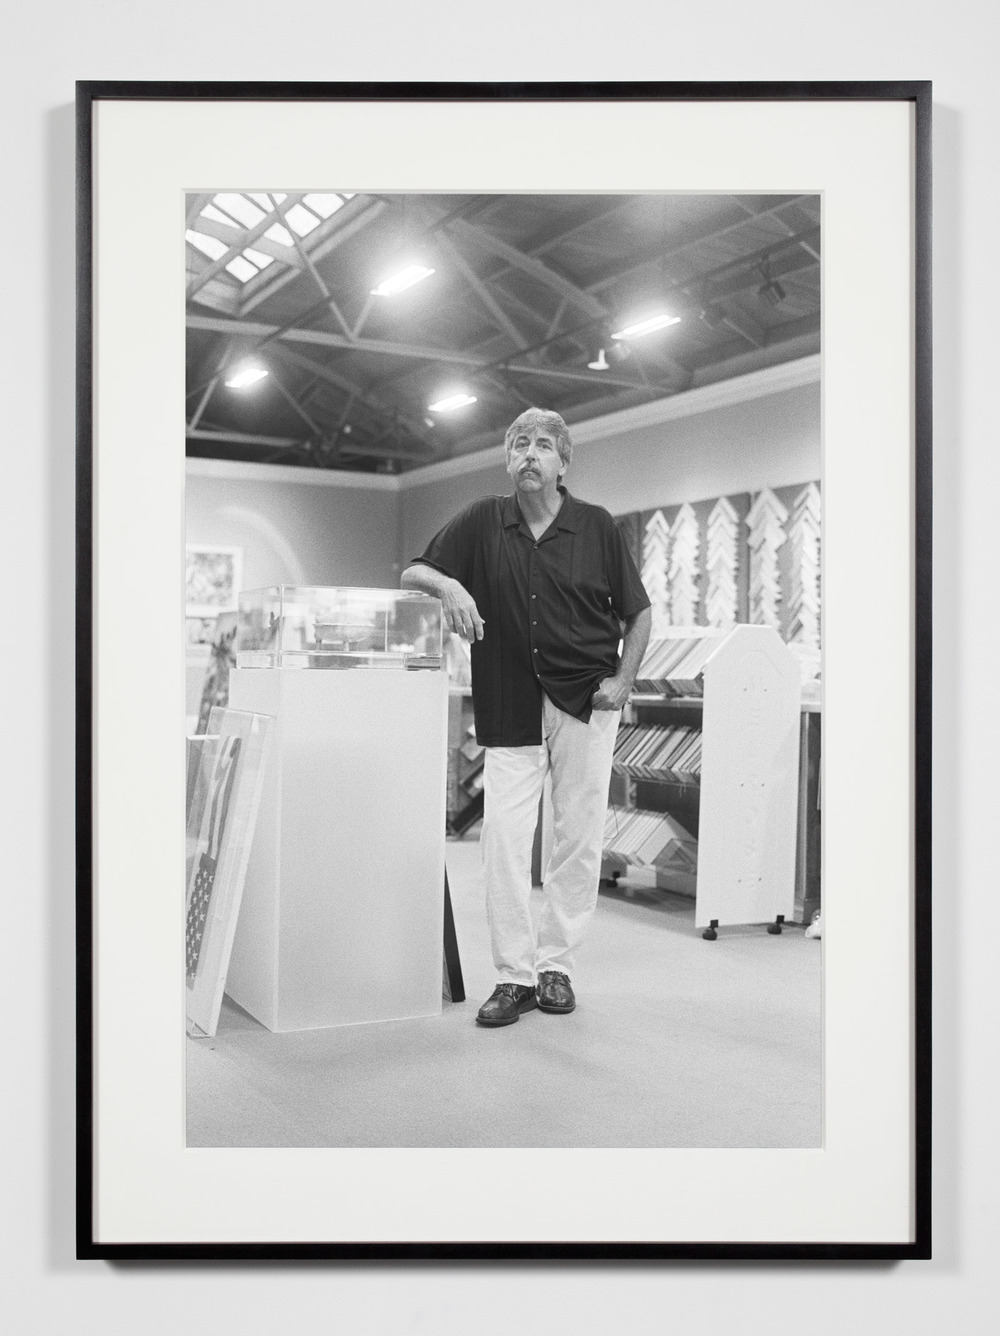 Master Framer, Los Angeles, California, June 20, 2009    2011   Epson Ultrachrome K3 archival ink jet print on Hahnemühle Photo Rag paper  36 3/8 x 26 3/8 inches   Industrial Portraits, 2008–